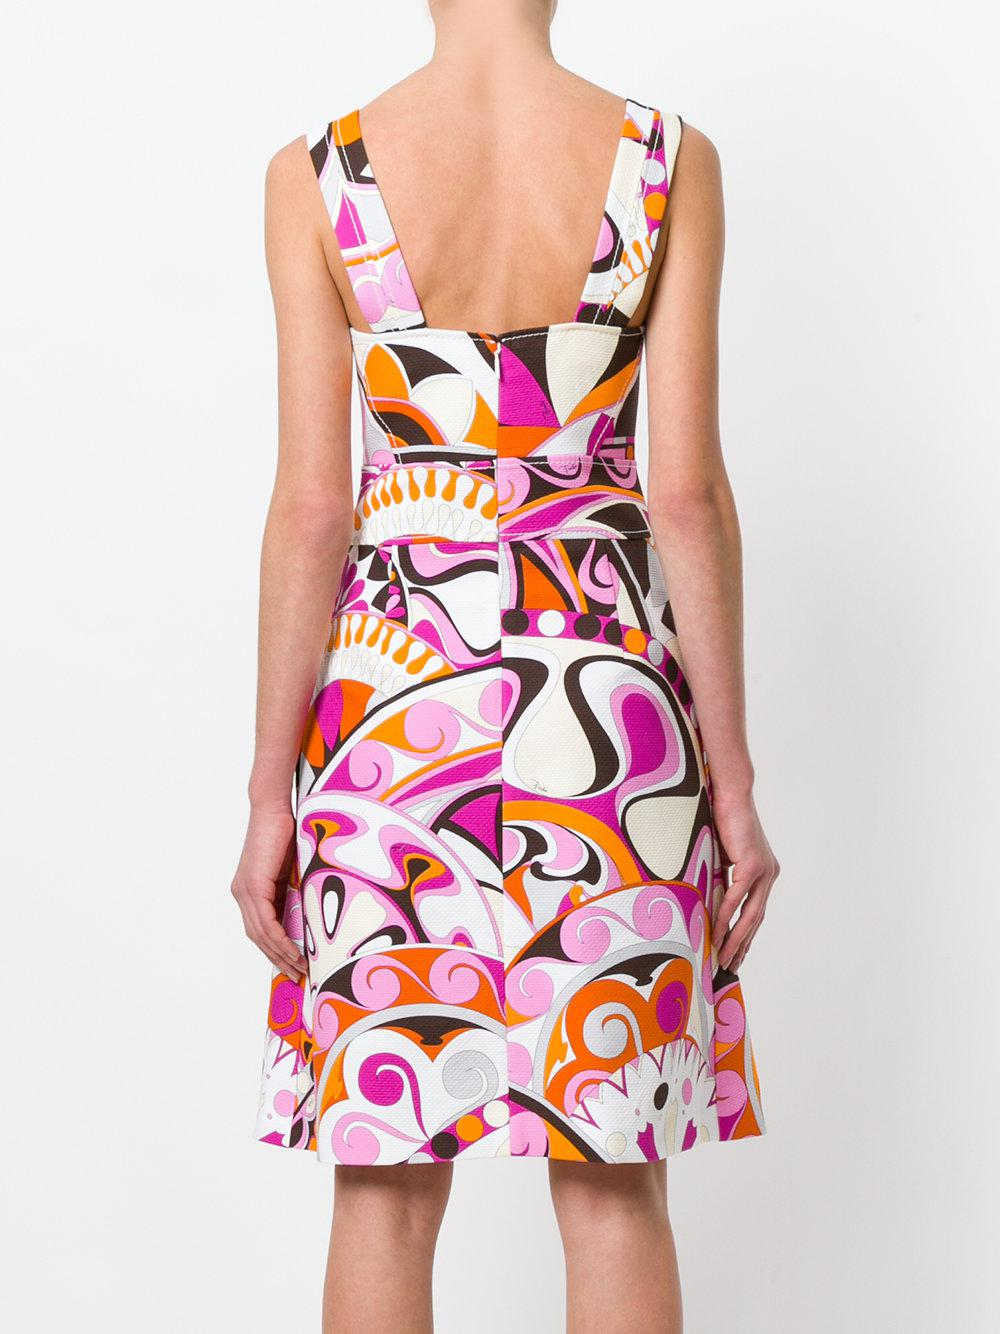 Manchester For Sale Outlet How Much printed apron dress - Multicolour Emilio Pucci 7X2TbPvzUy